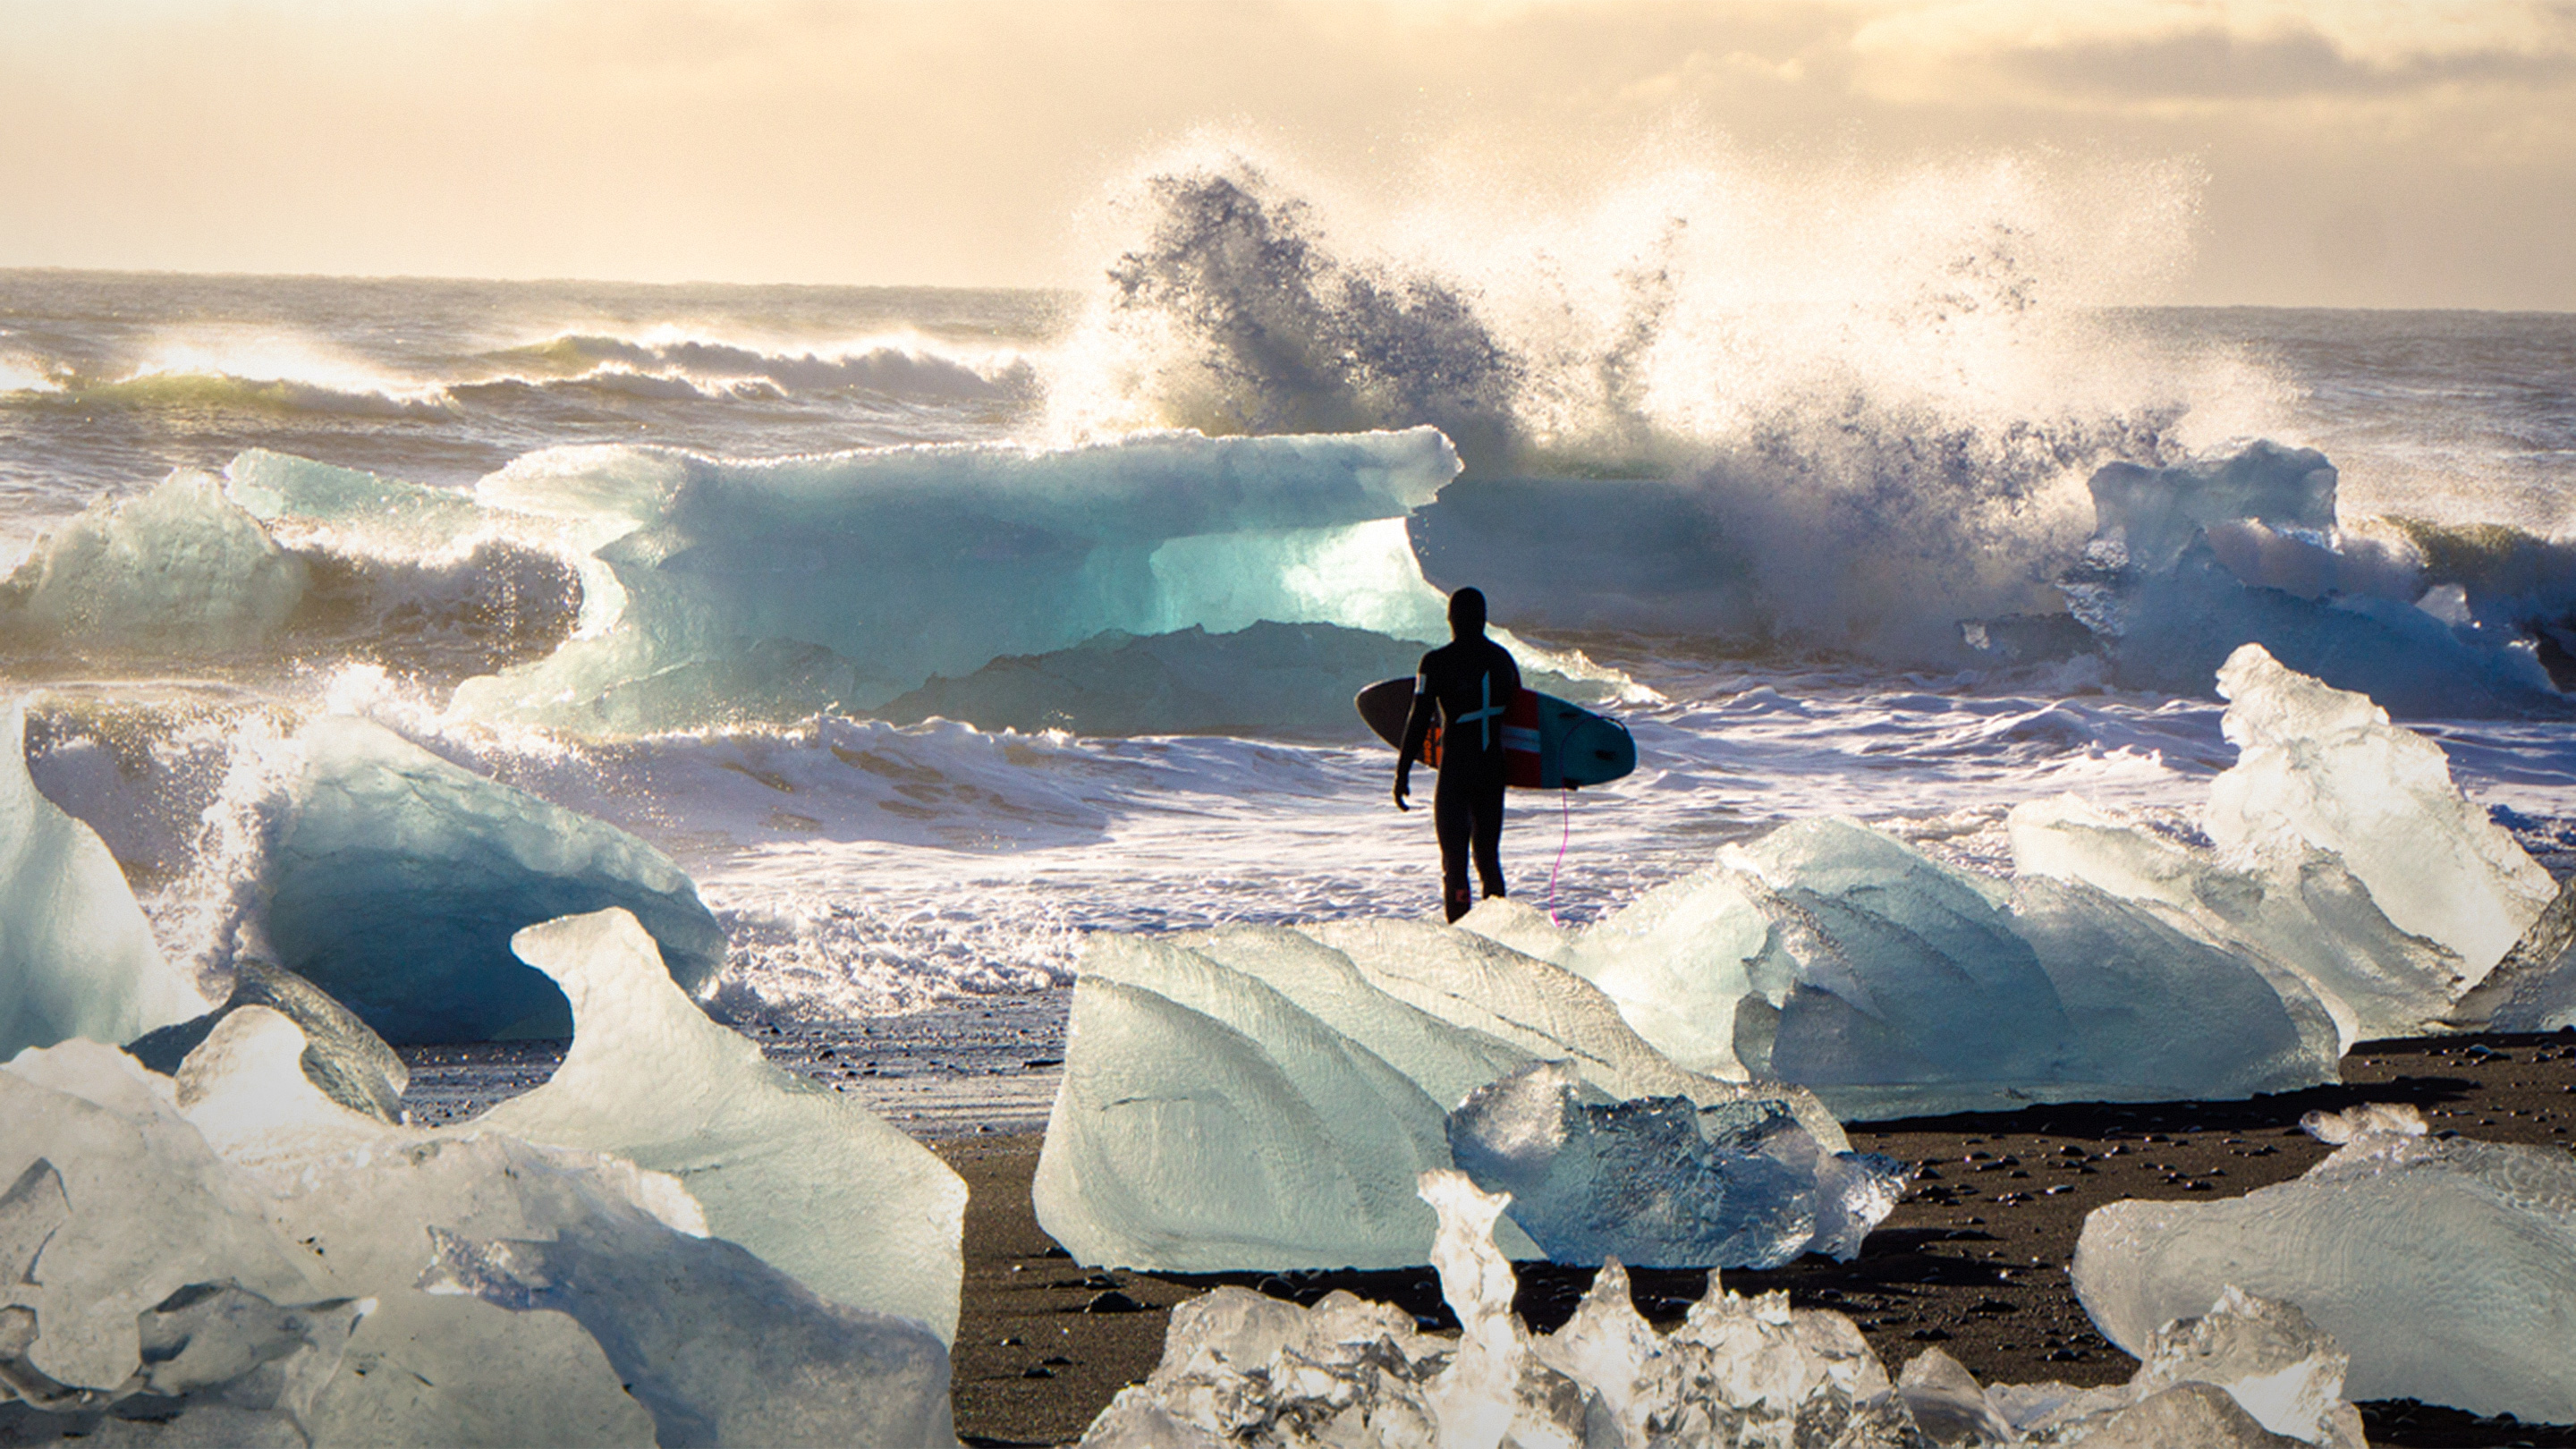 Chris Burkard: The joy of surfing in ice-cold water thumbnail